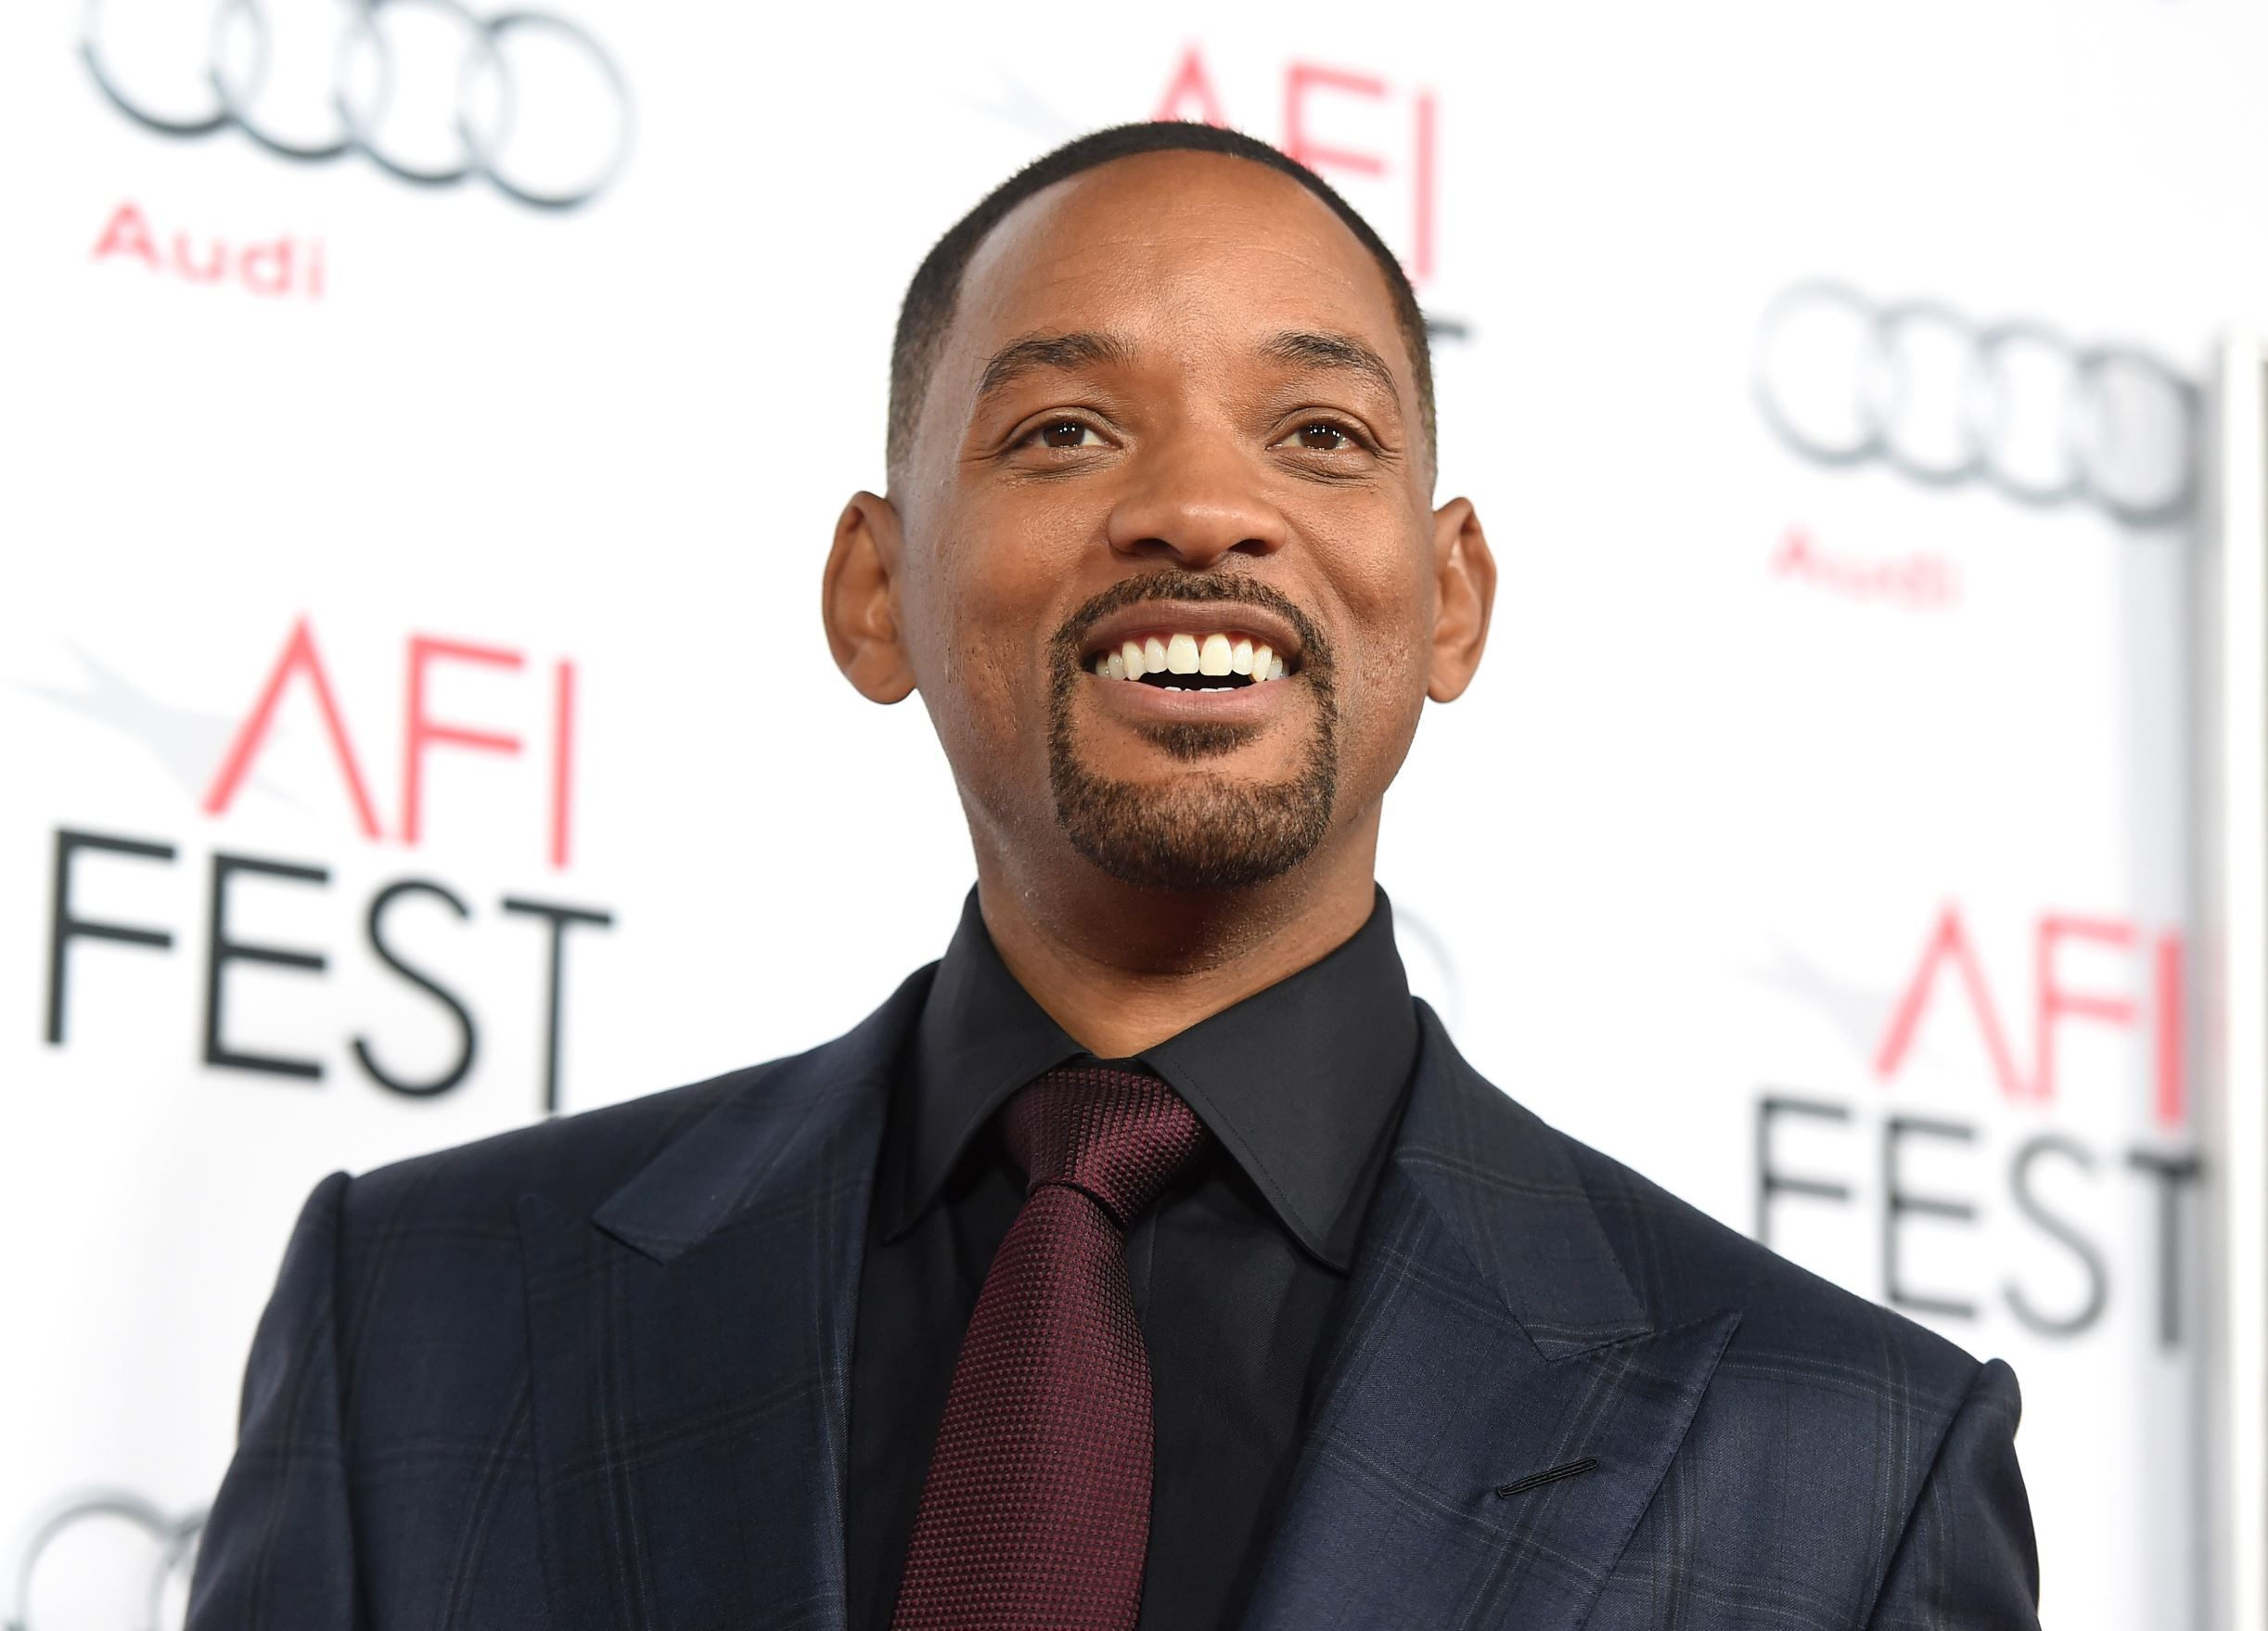 """If you really want Will Smith to star in your movie, the best thing to do is get someone with a ton of clout to convince the actor to take on the role. Like Ridley Scott. At the AFI Fest premiere of Concussion in Hollywood Tuesday, writer/director Peter Landesman told USA TODAY he wrote the script about real-life Dr. Bennet Omalu and his discovery of football-induced brain injury, CTE, with only Will Smith in mind to star as the Nigerian forensic neuropathologist. """"Will was in this movie…"""